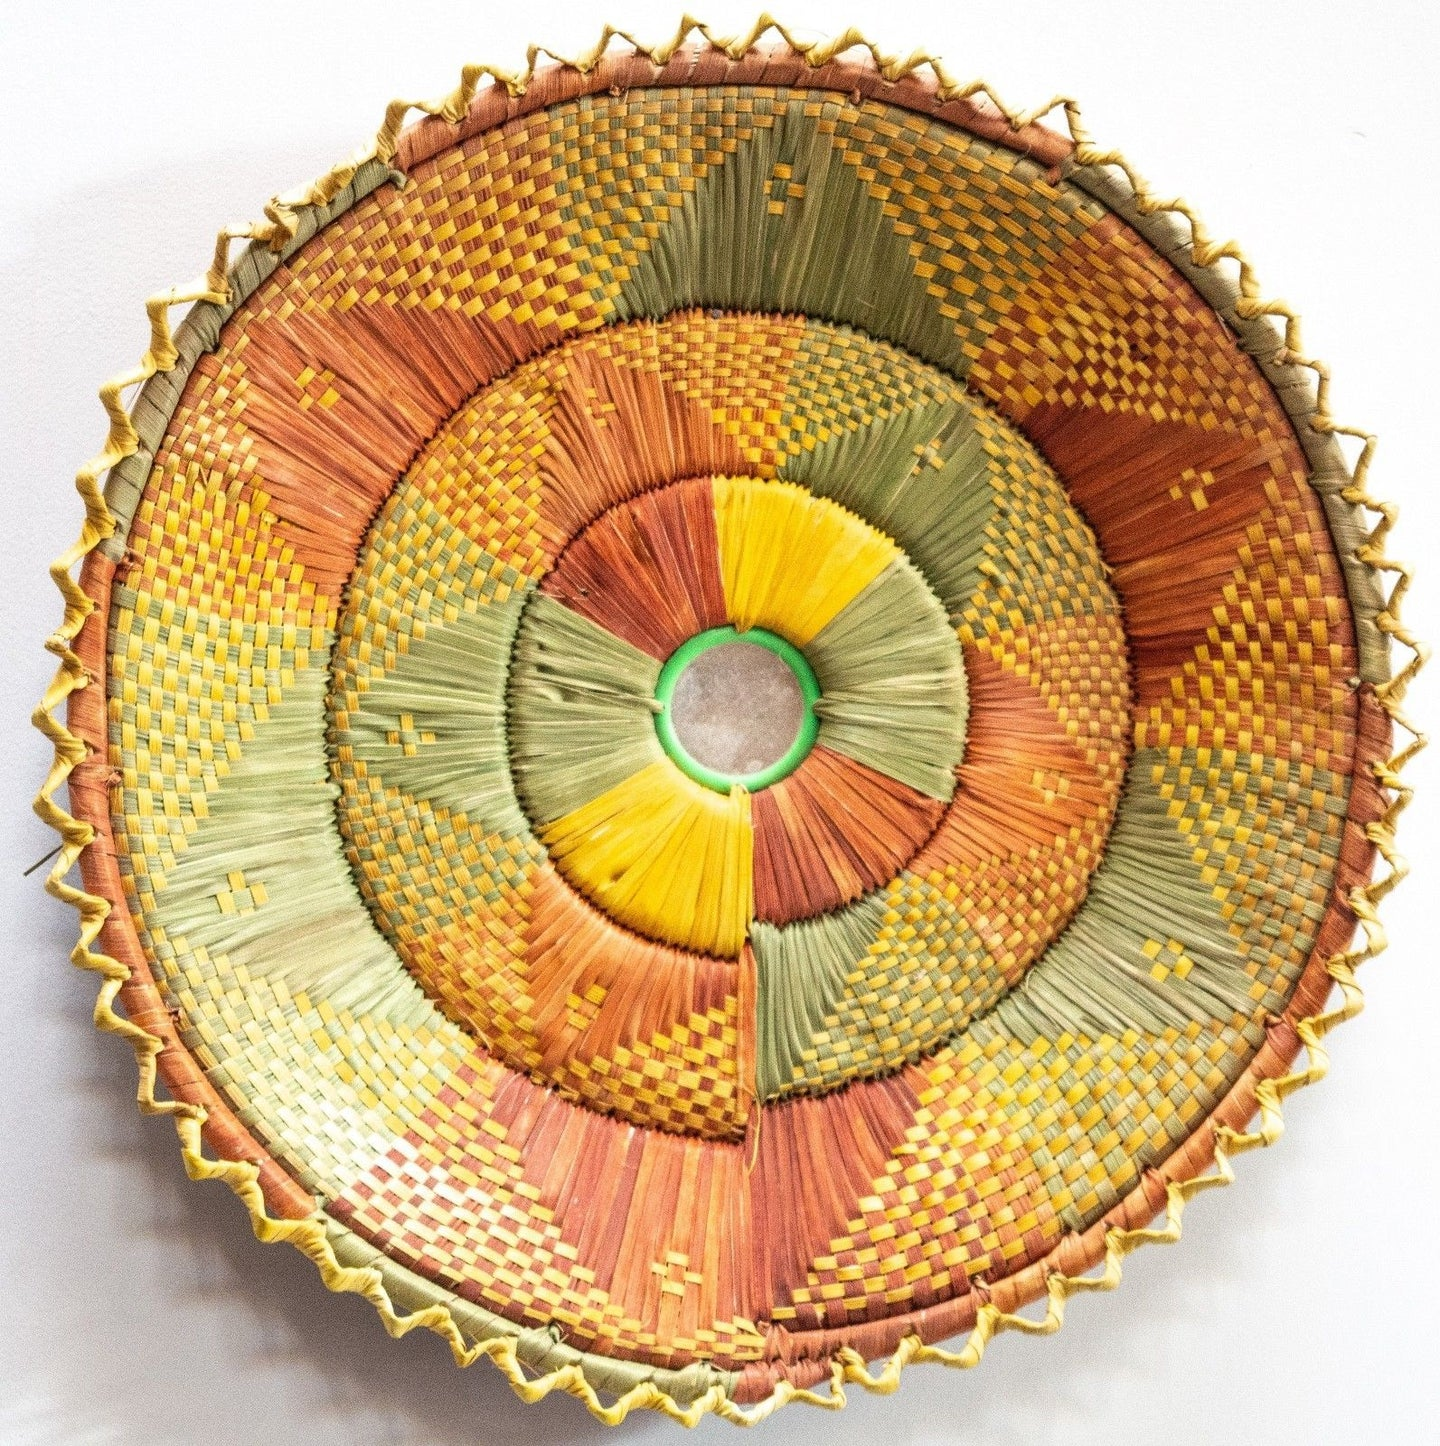 12inches handwoven southwestern design handmade coil basket best quality 201